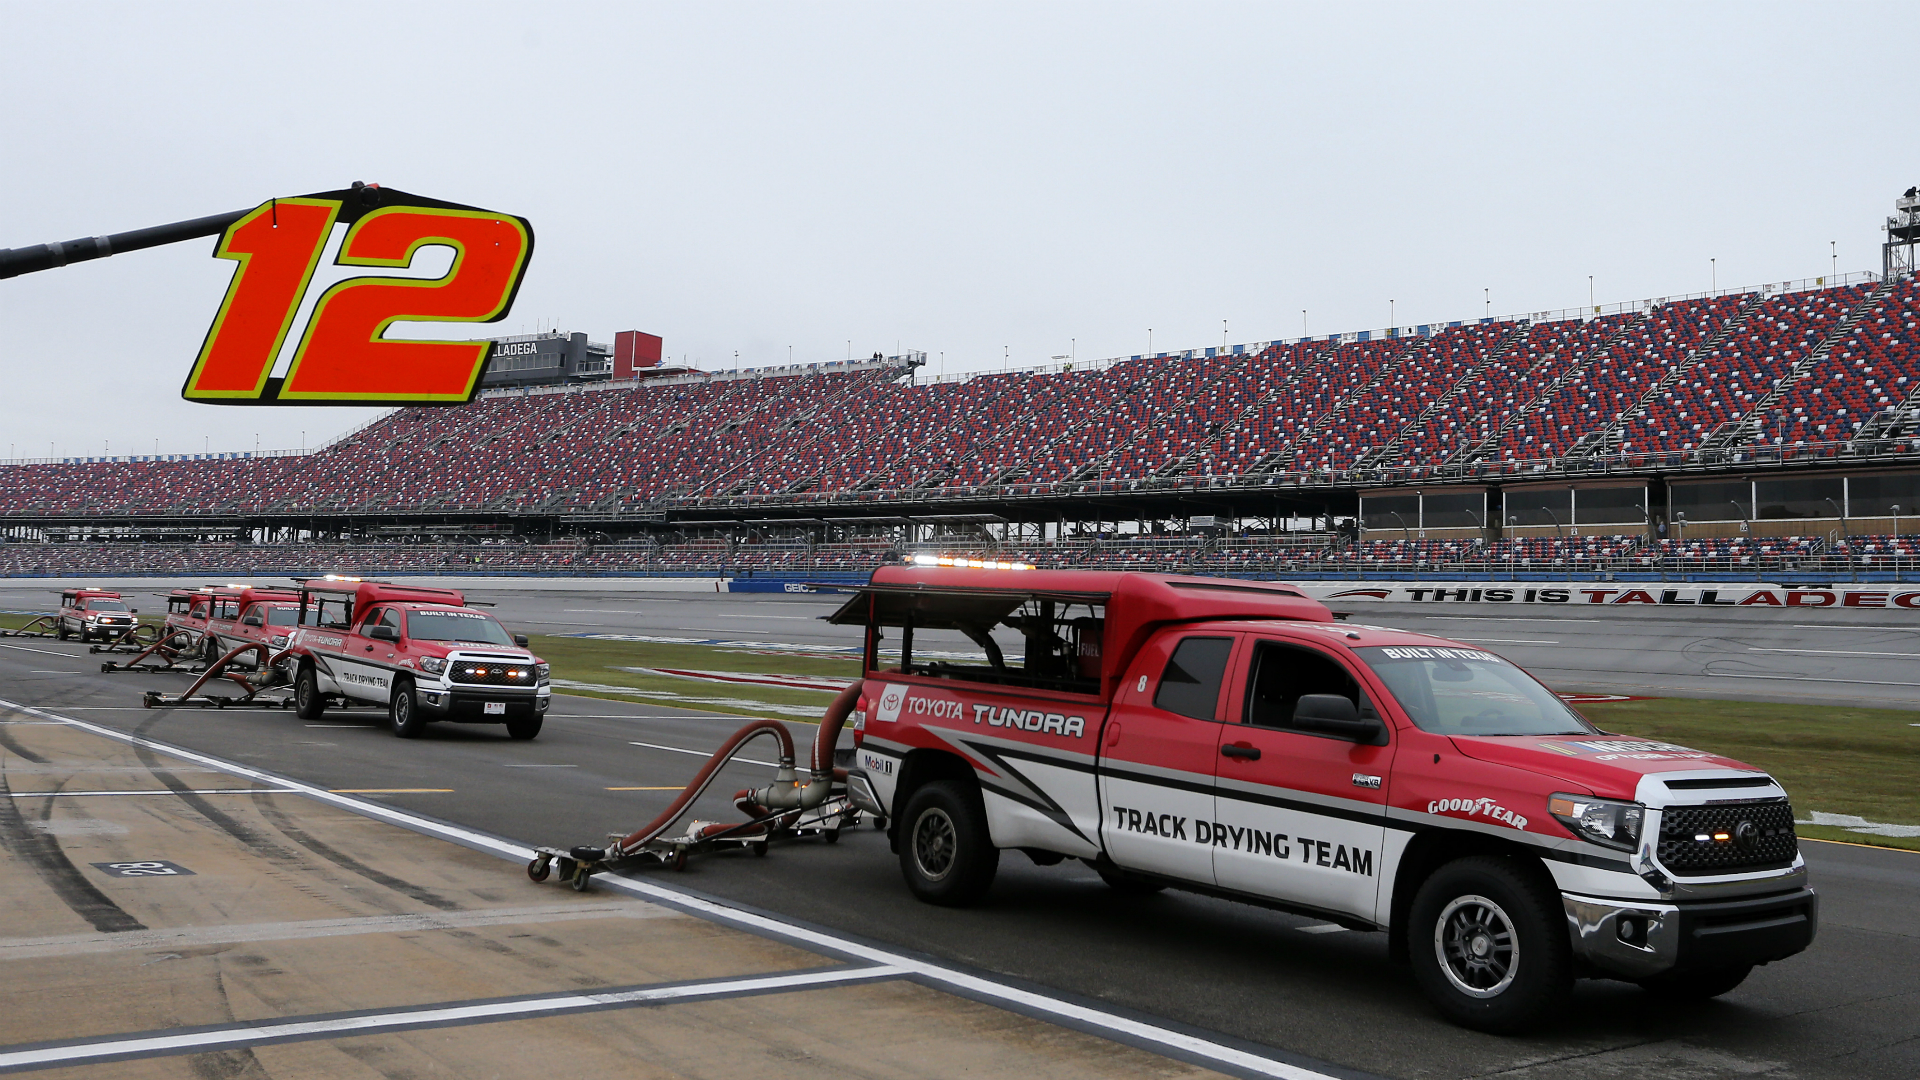 NASCAR weather update: Race at Talladega to restart Monday after rain delay